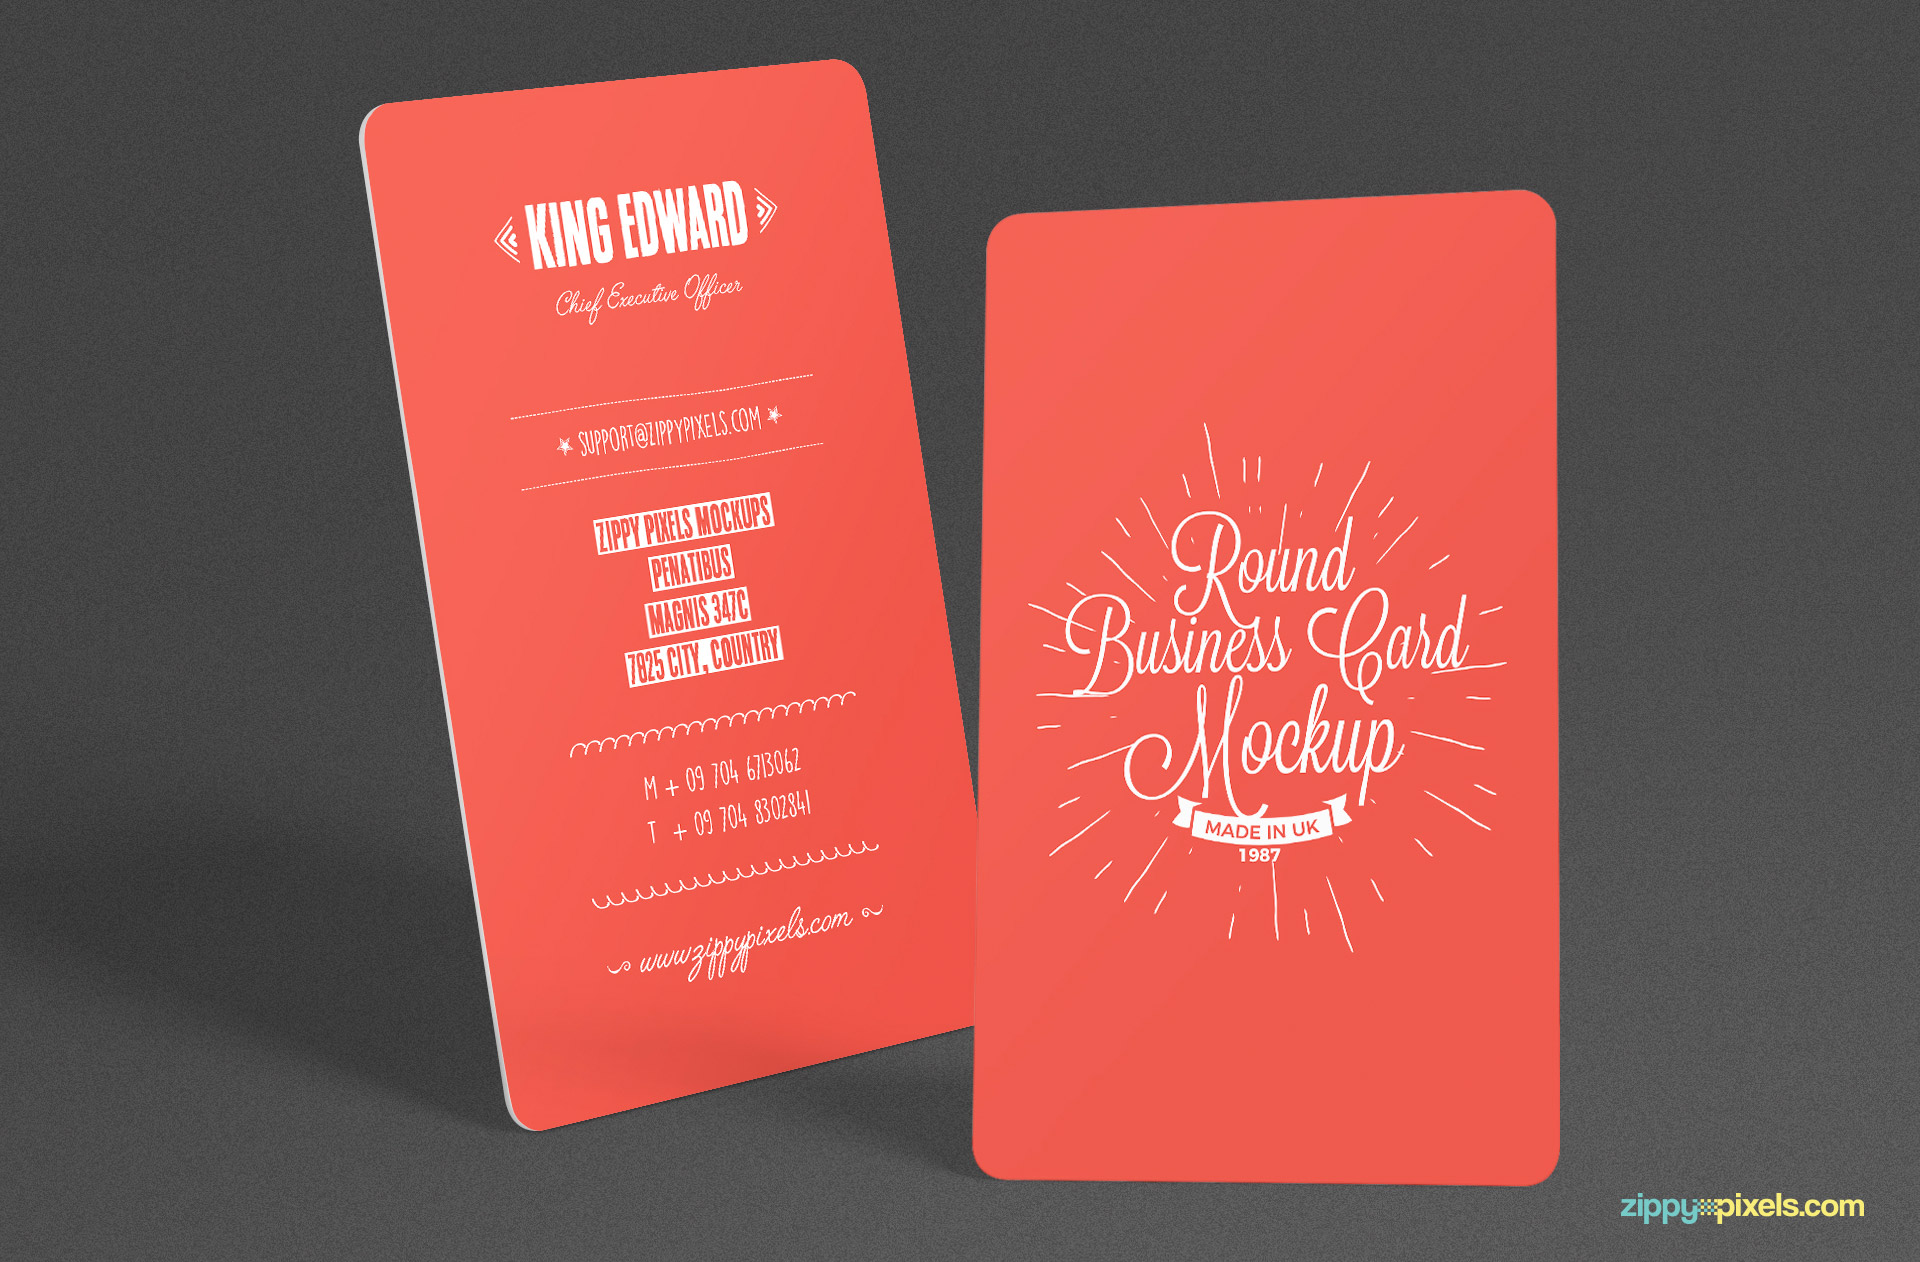 Free Stylish Round Business Card Mockup PSD | ZippyPixels